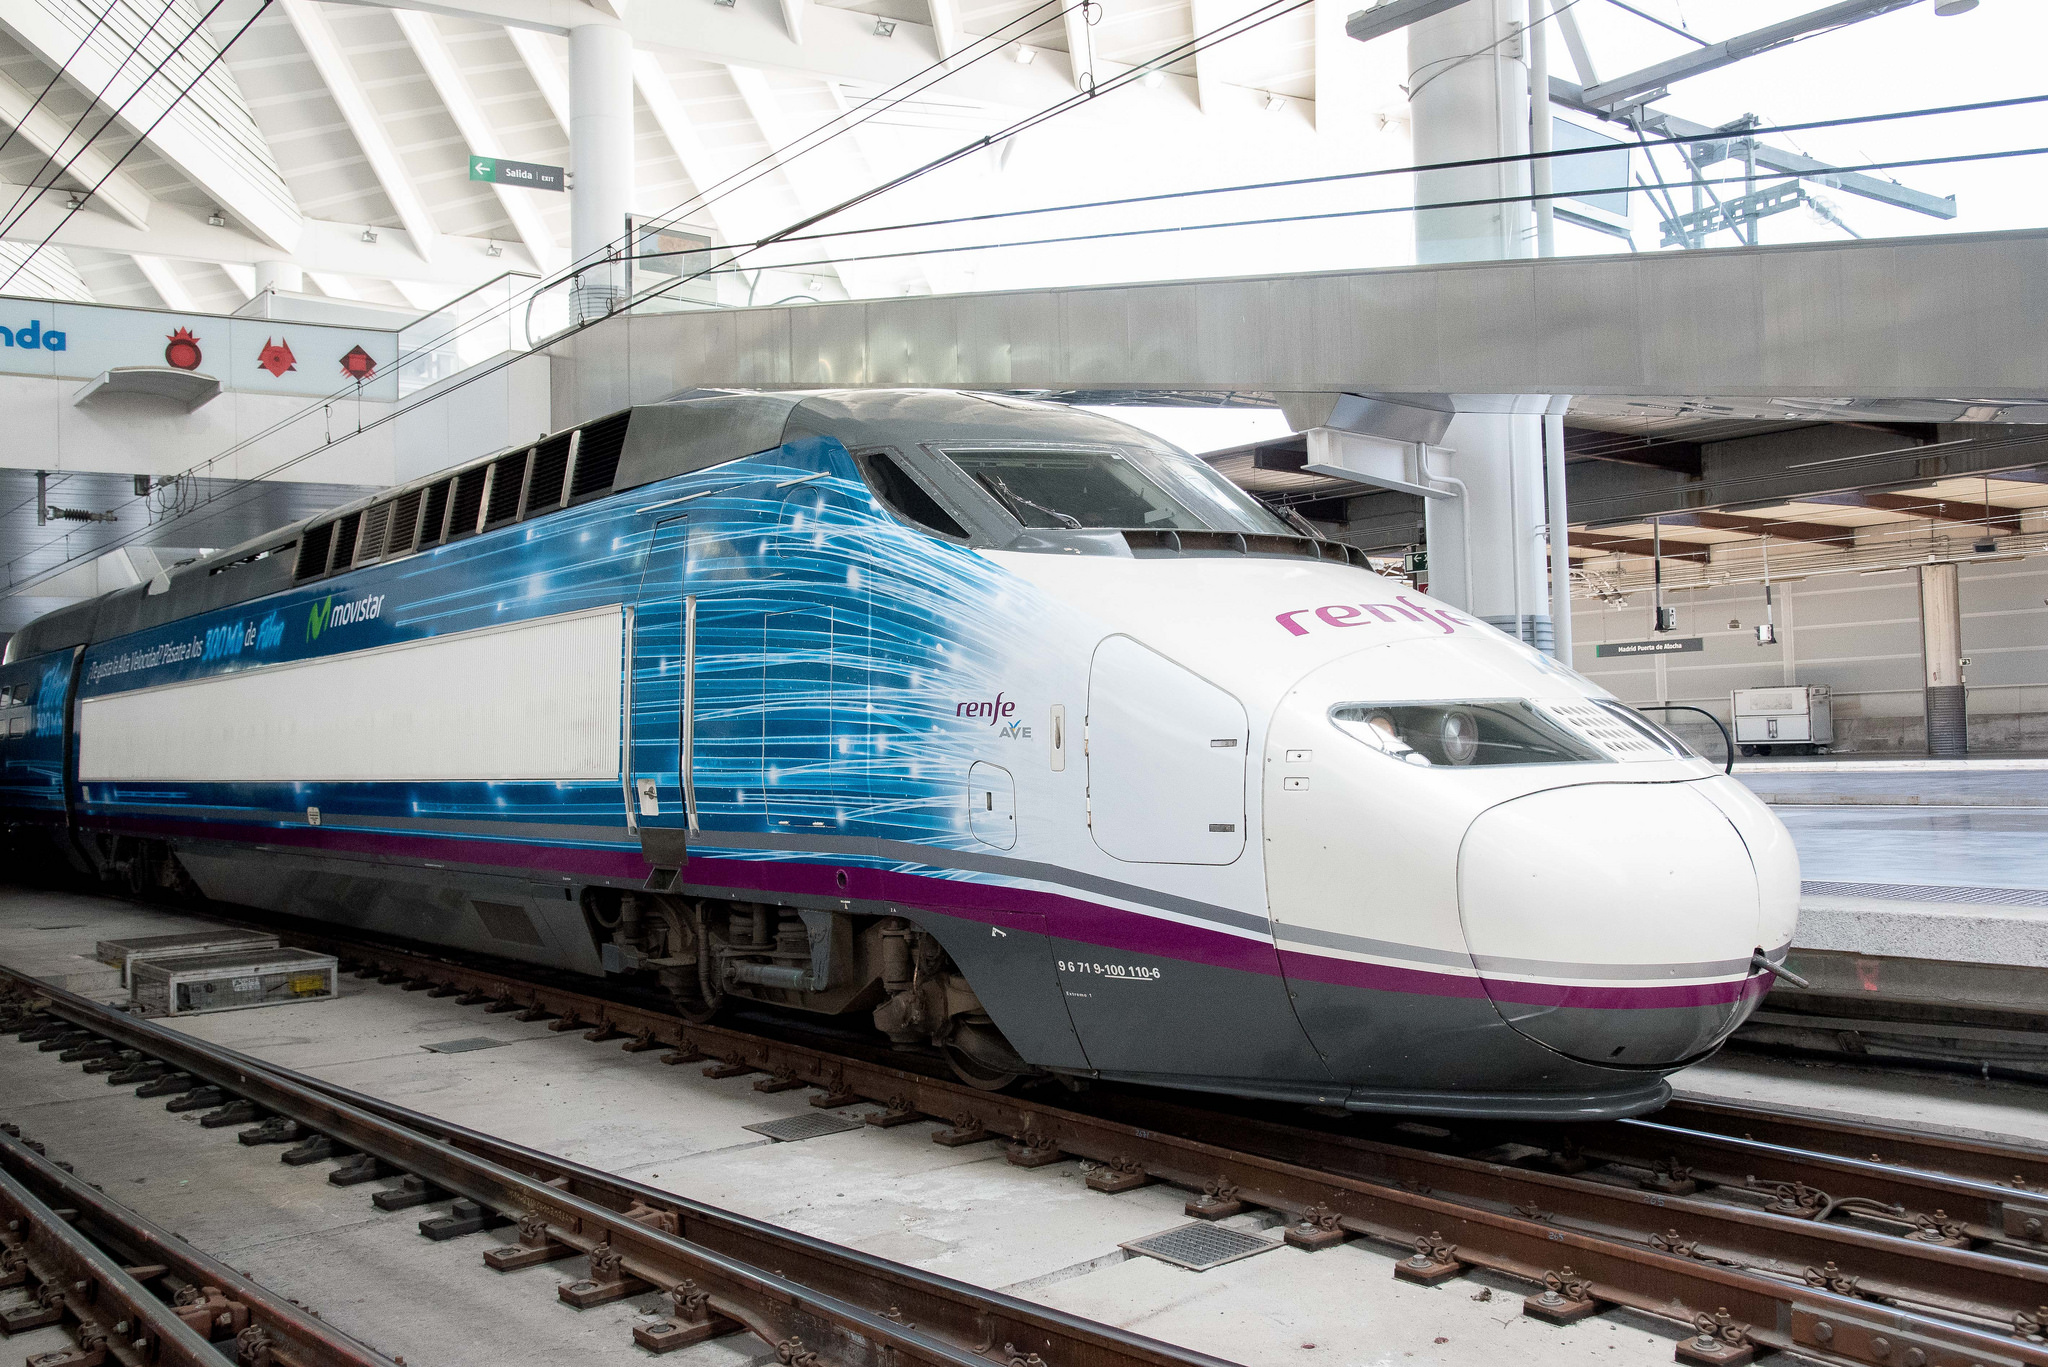 Spanish railways battle profit loss with more investment - Railway ...